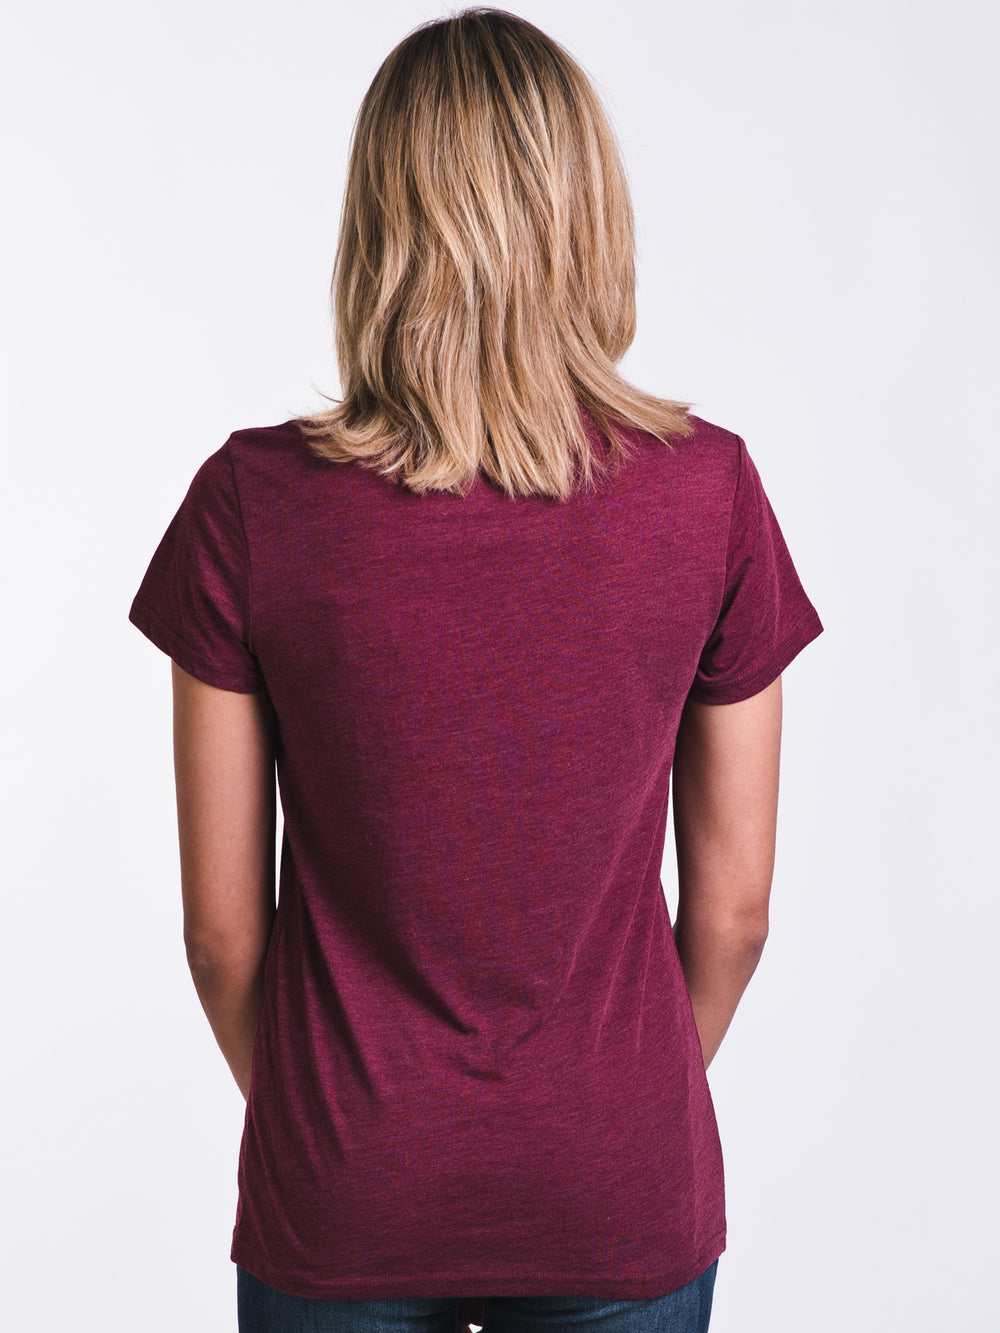 WOMENS JUNIPER SHORT SLEEVE T-SHIRTEE - BURGUNDY